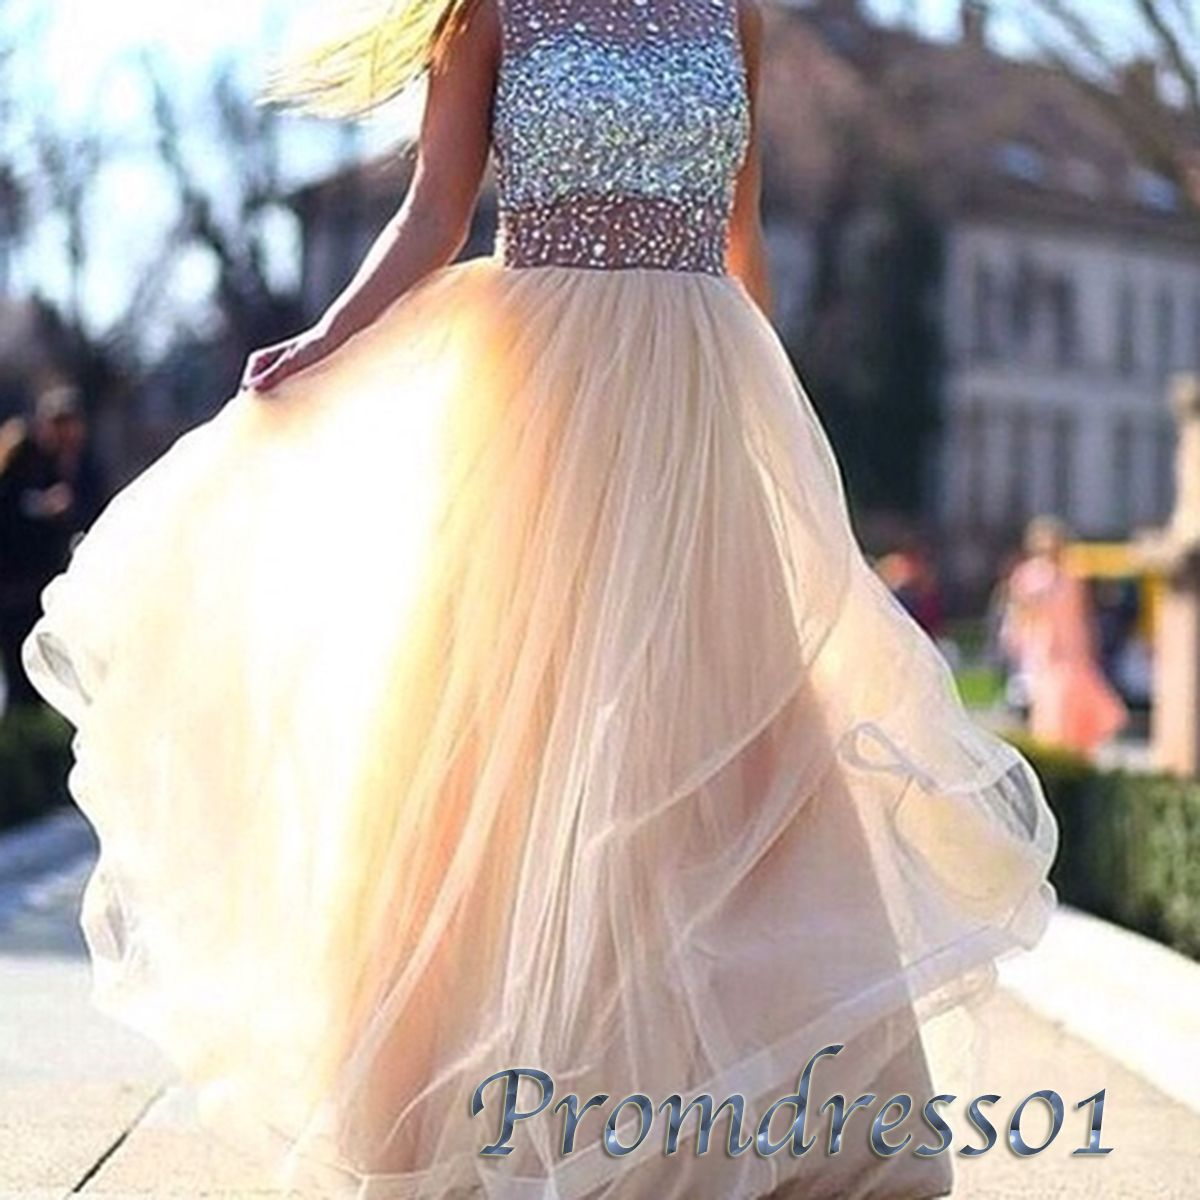 Pin by amber winstead on jsprom pinterest senior prom prom